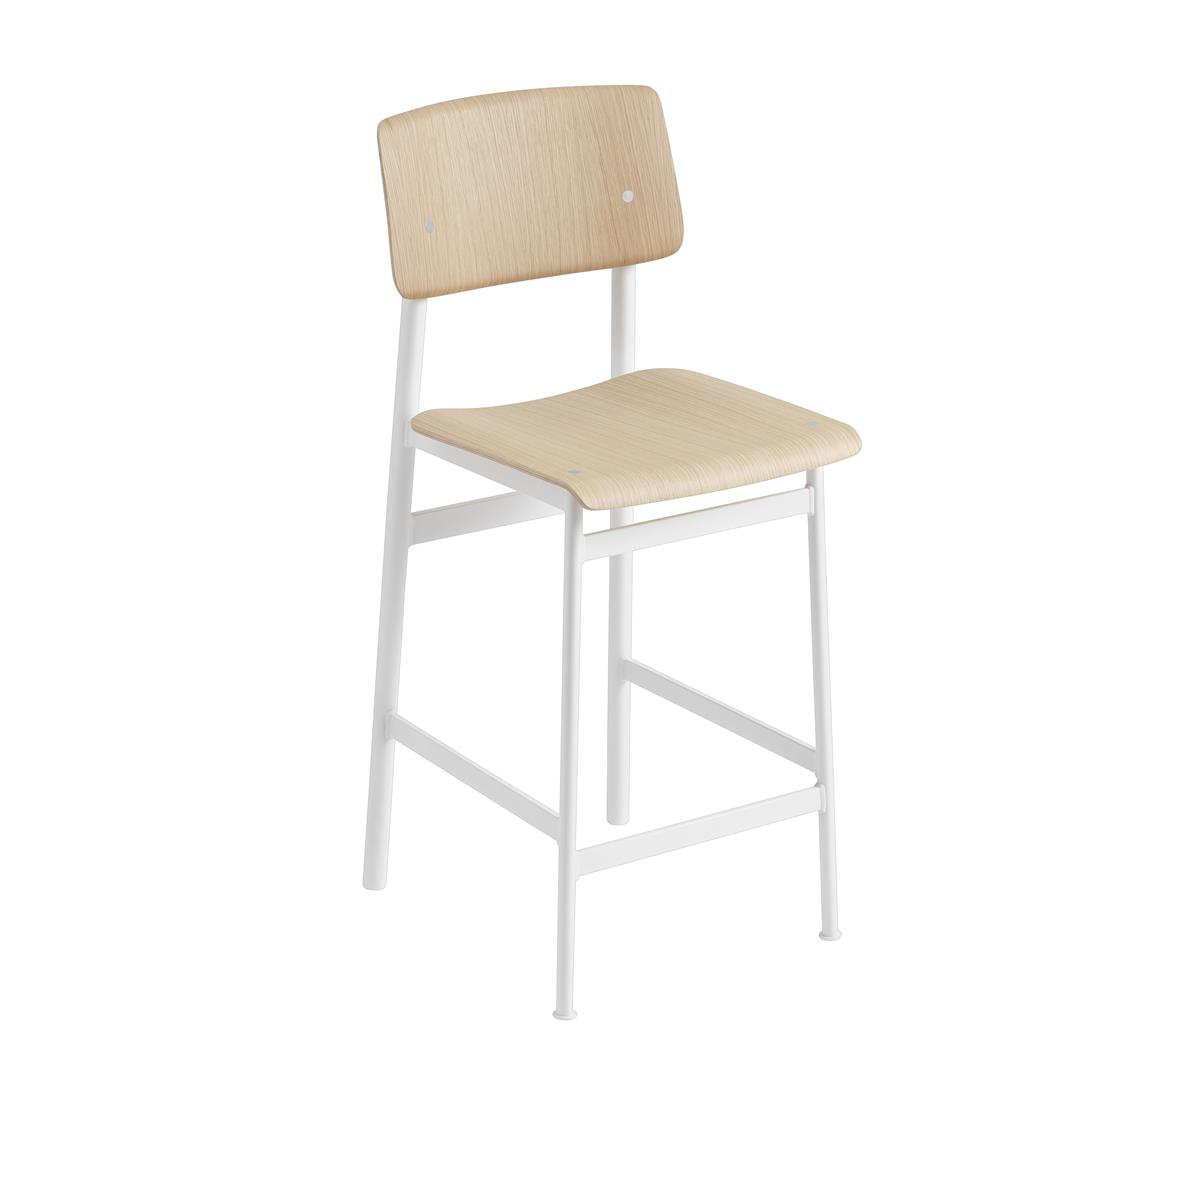 Loft Bar Stool H65 - White & Oak